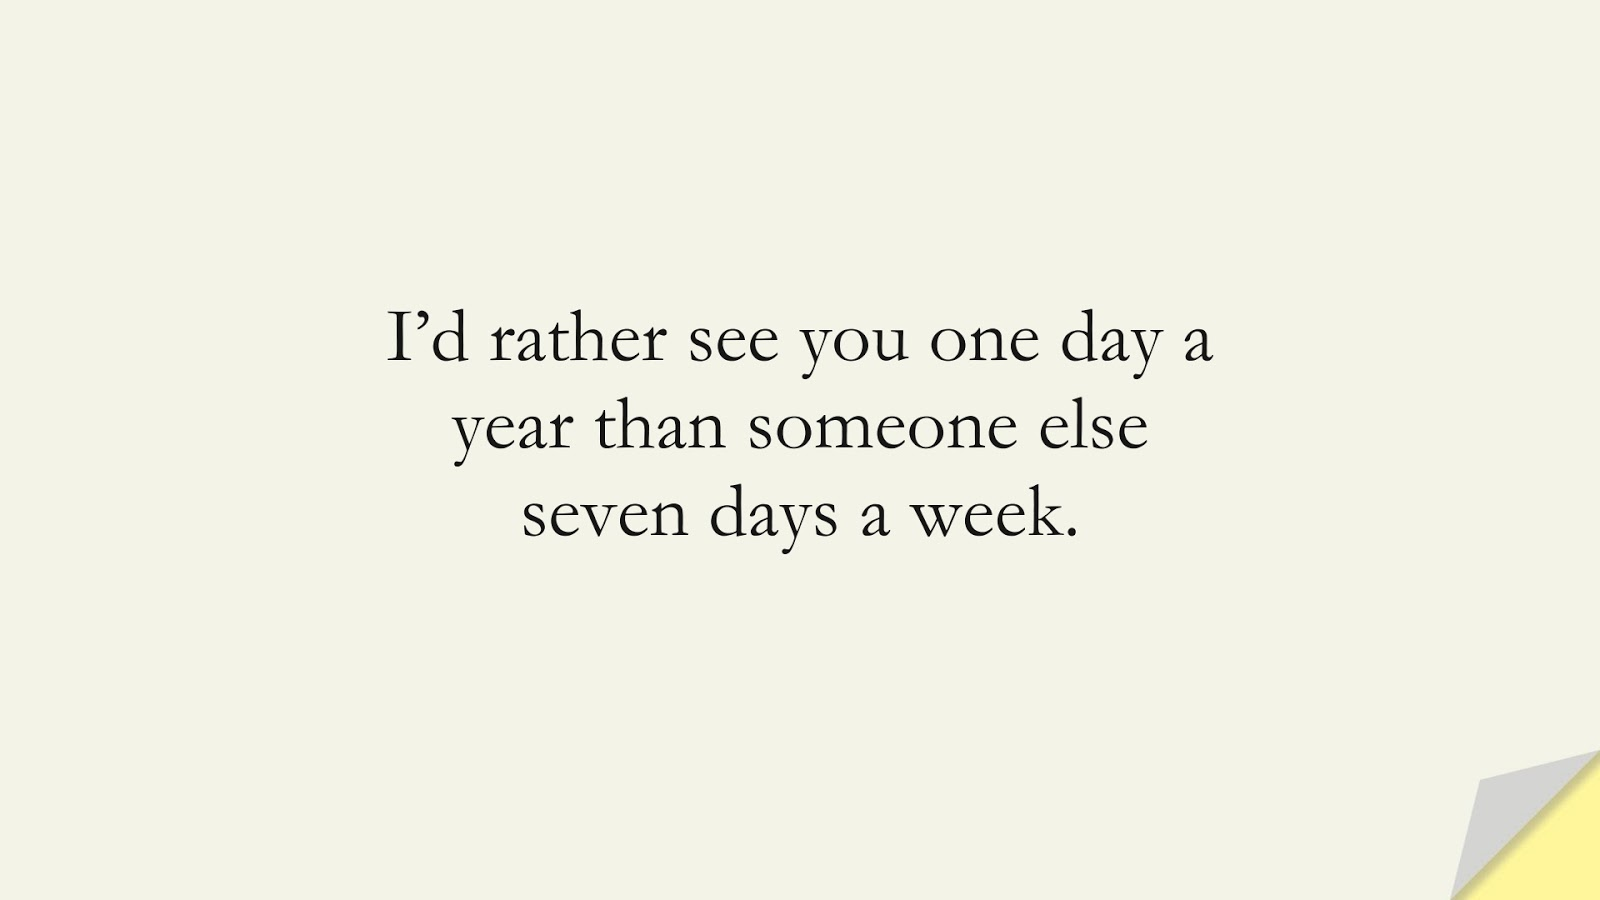 I'd rather see you one day a year than someone else seven days a week.FALSE